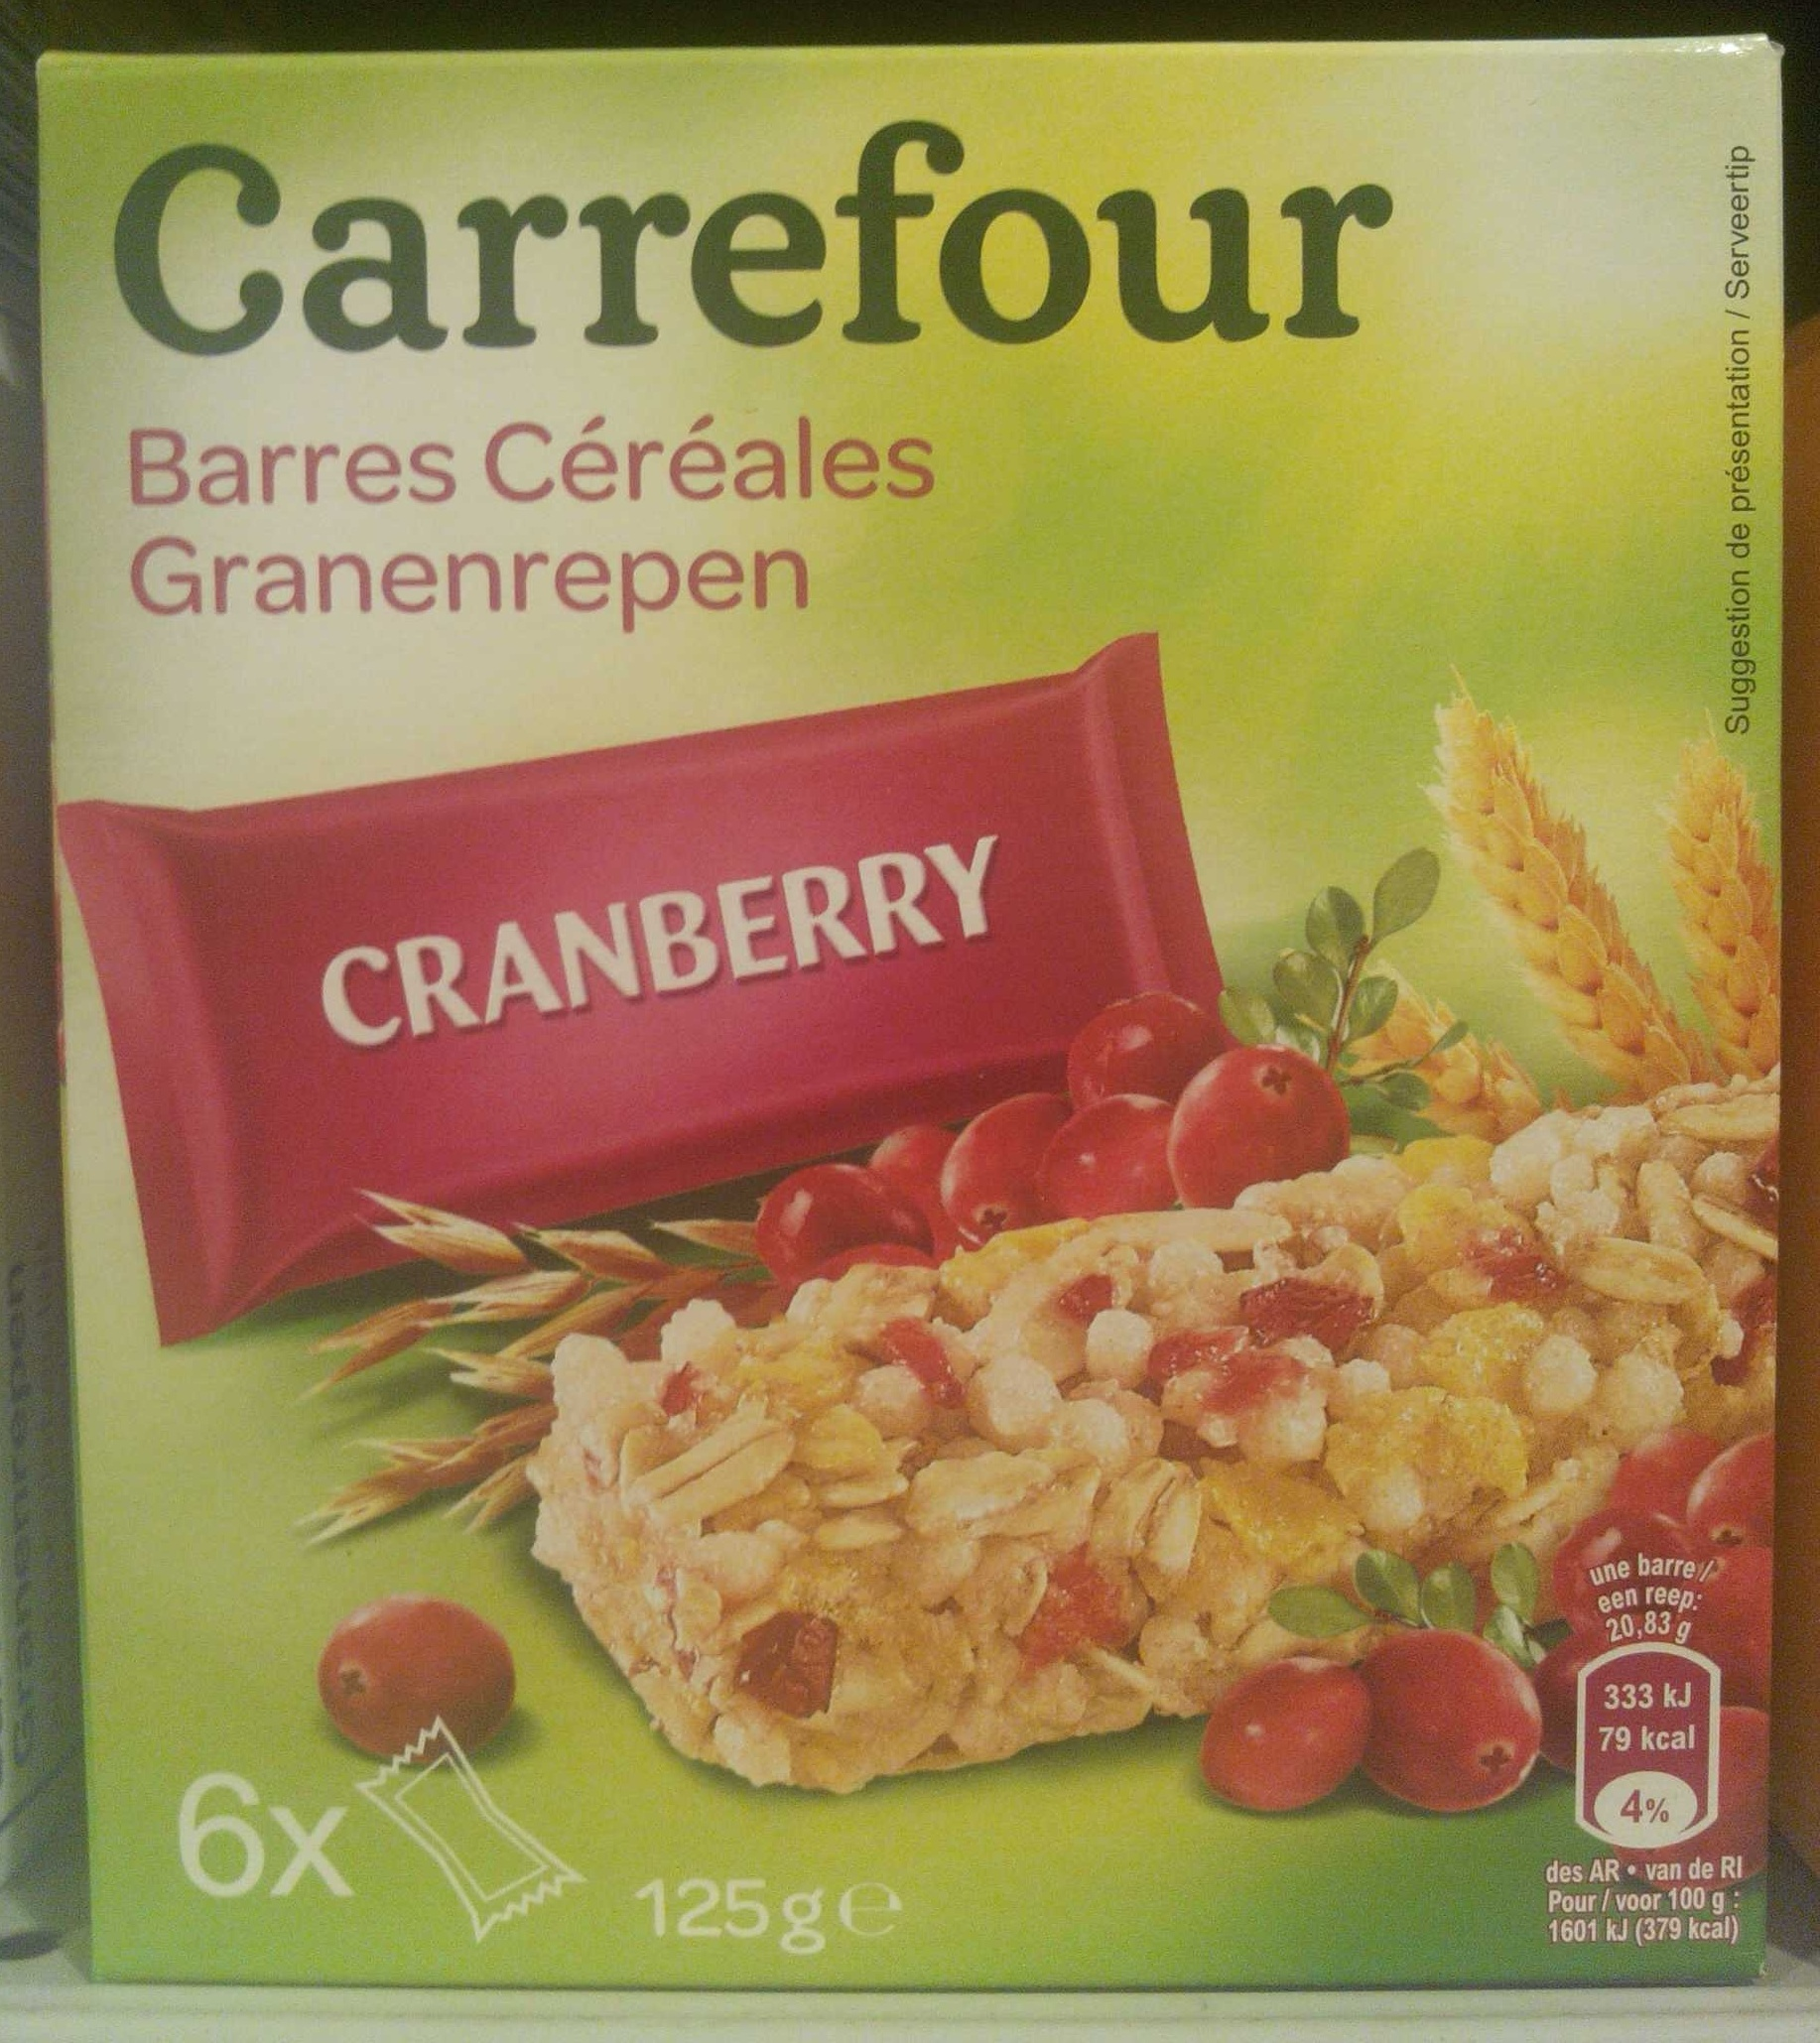 Barres Céréales Cranberry - Product - fr